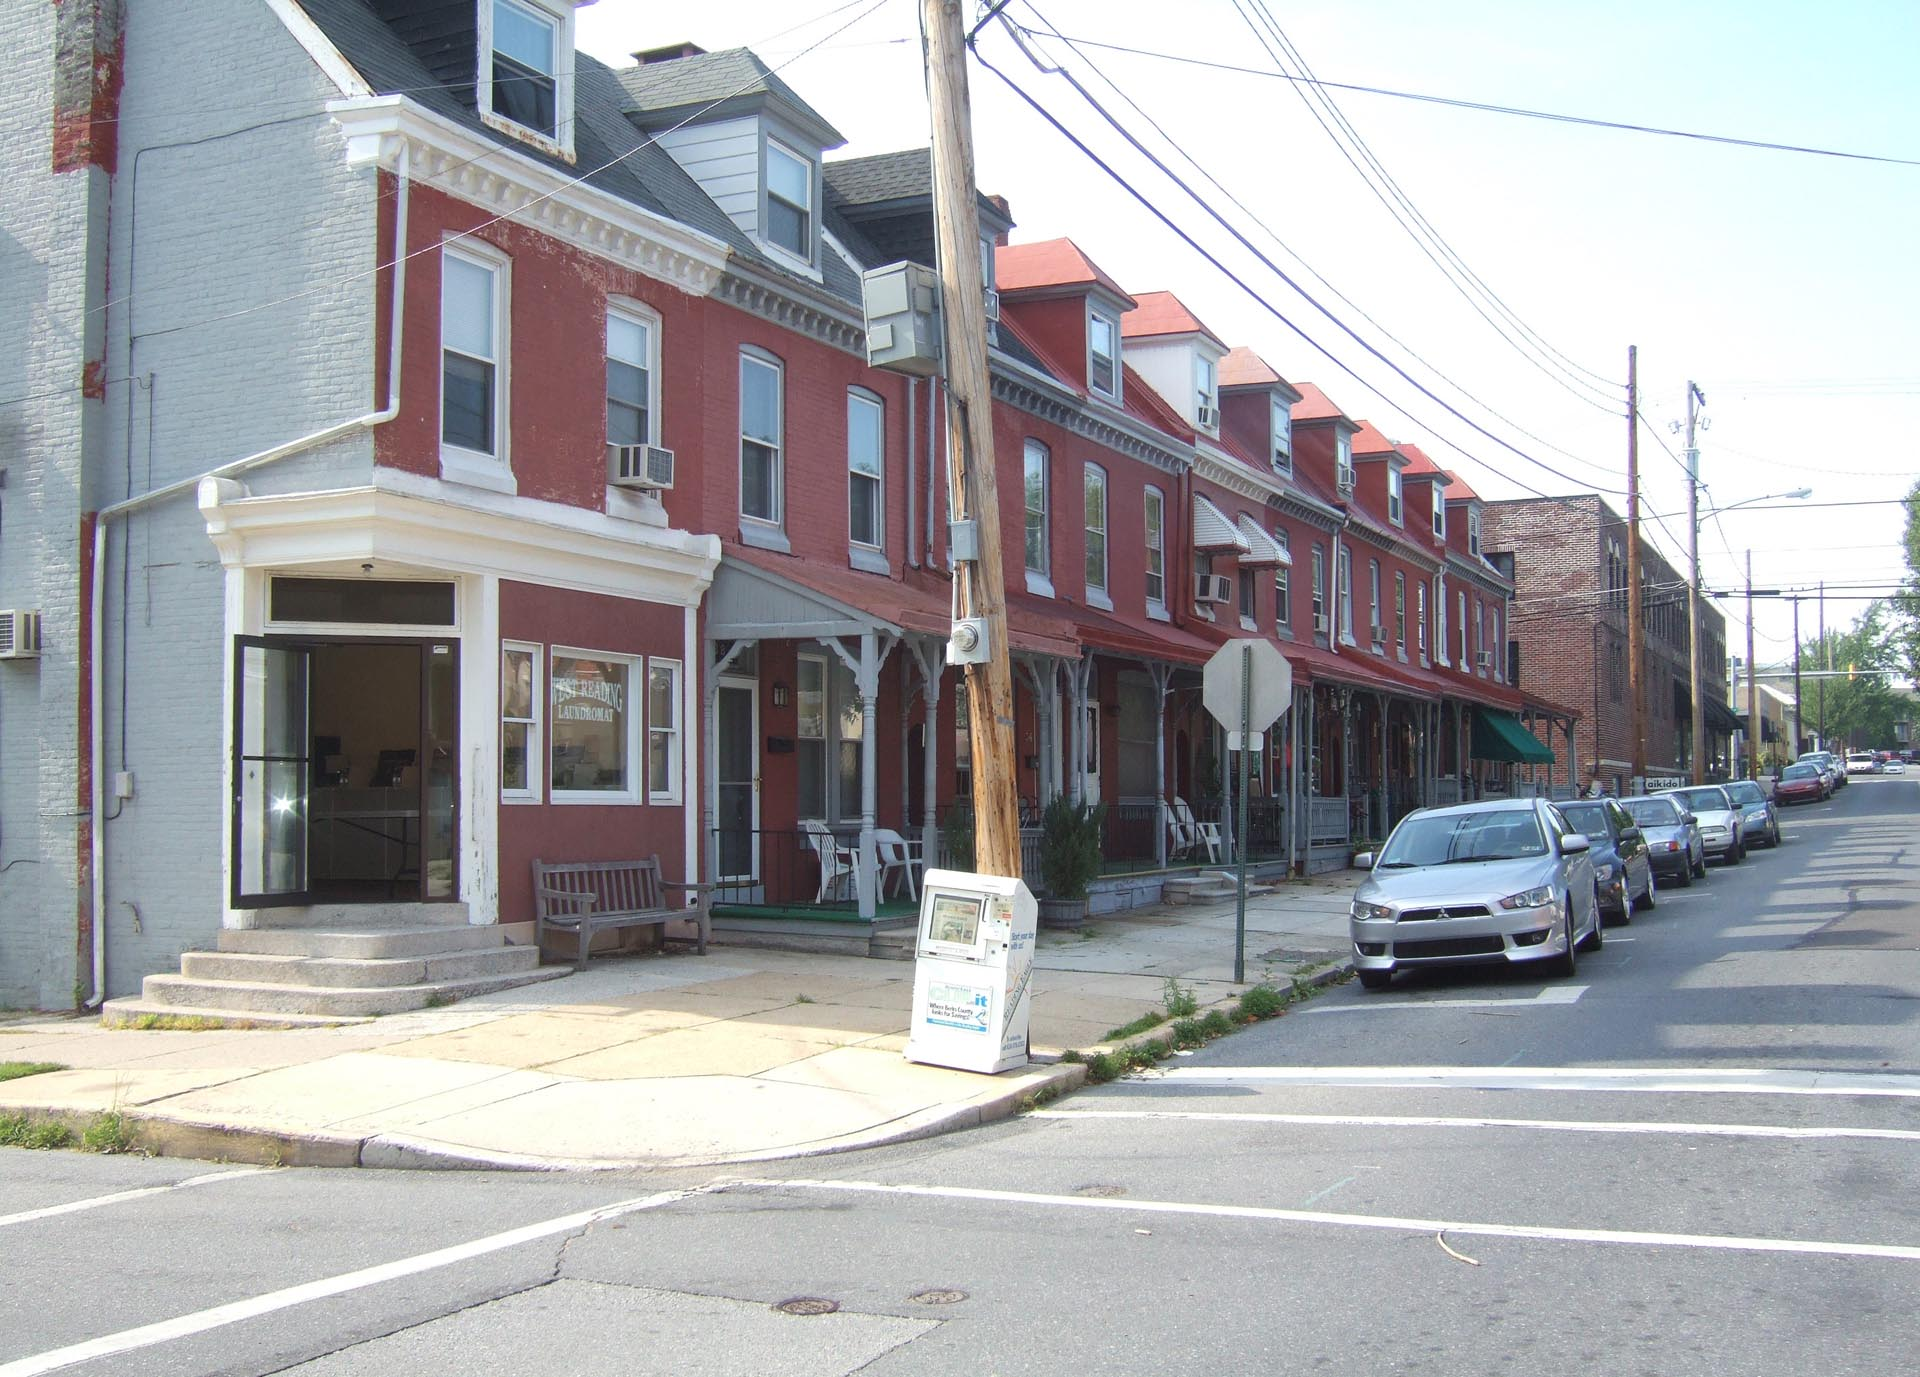 West Reading Elm Street Streetscape Before